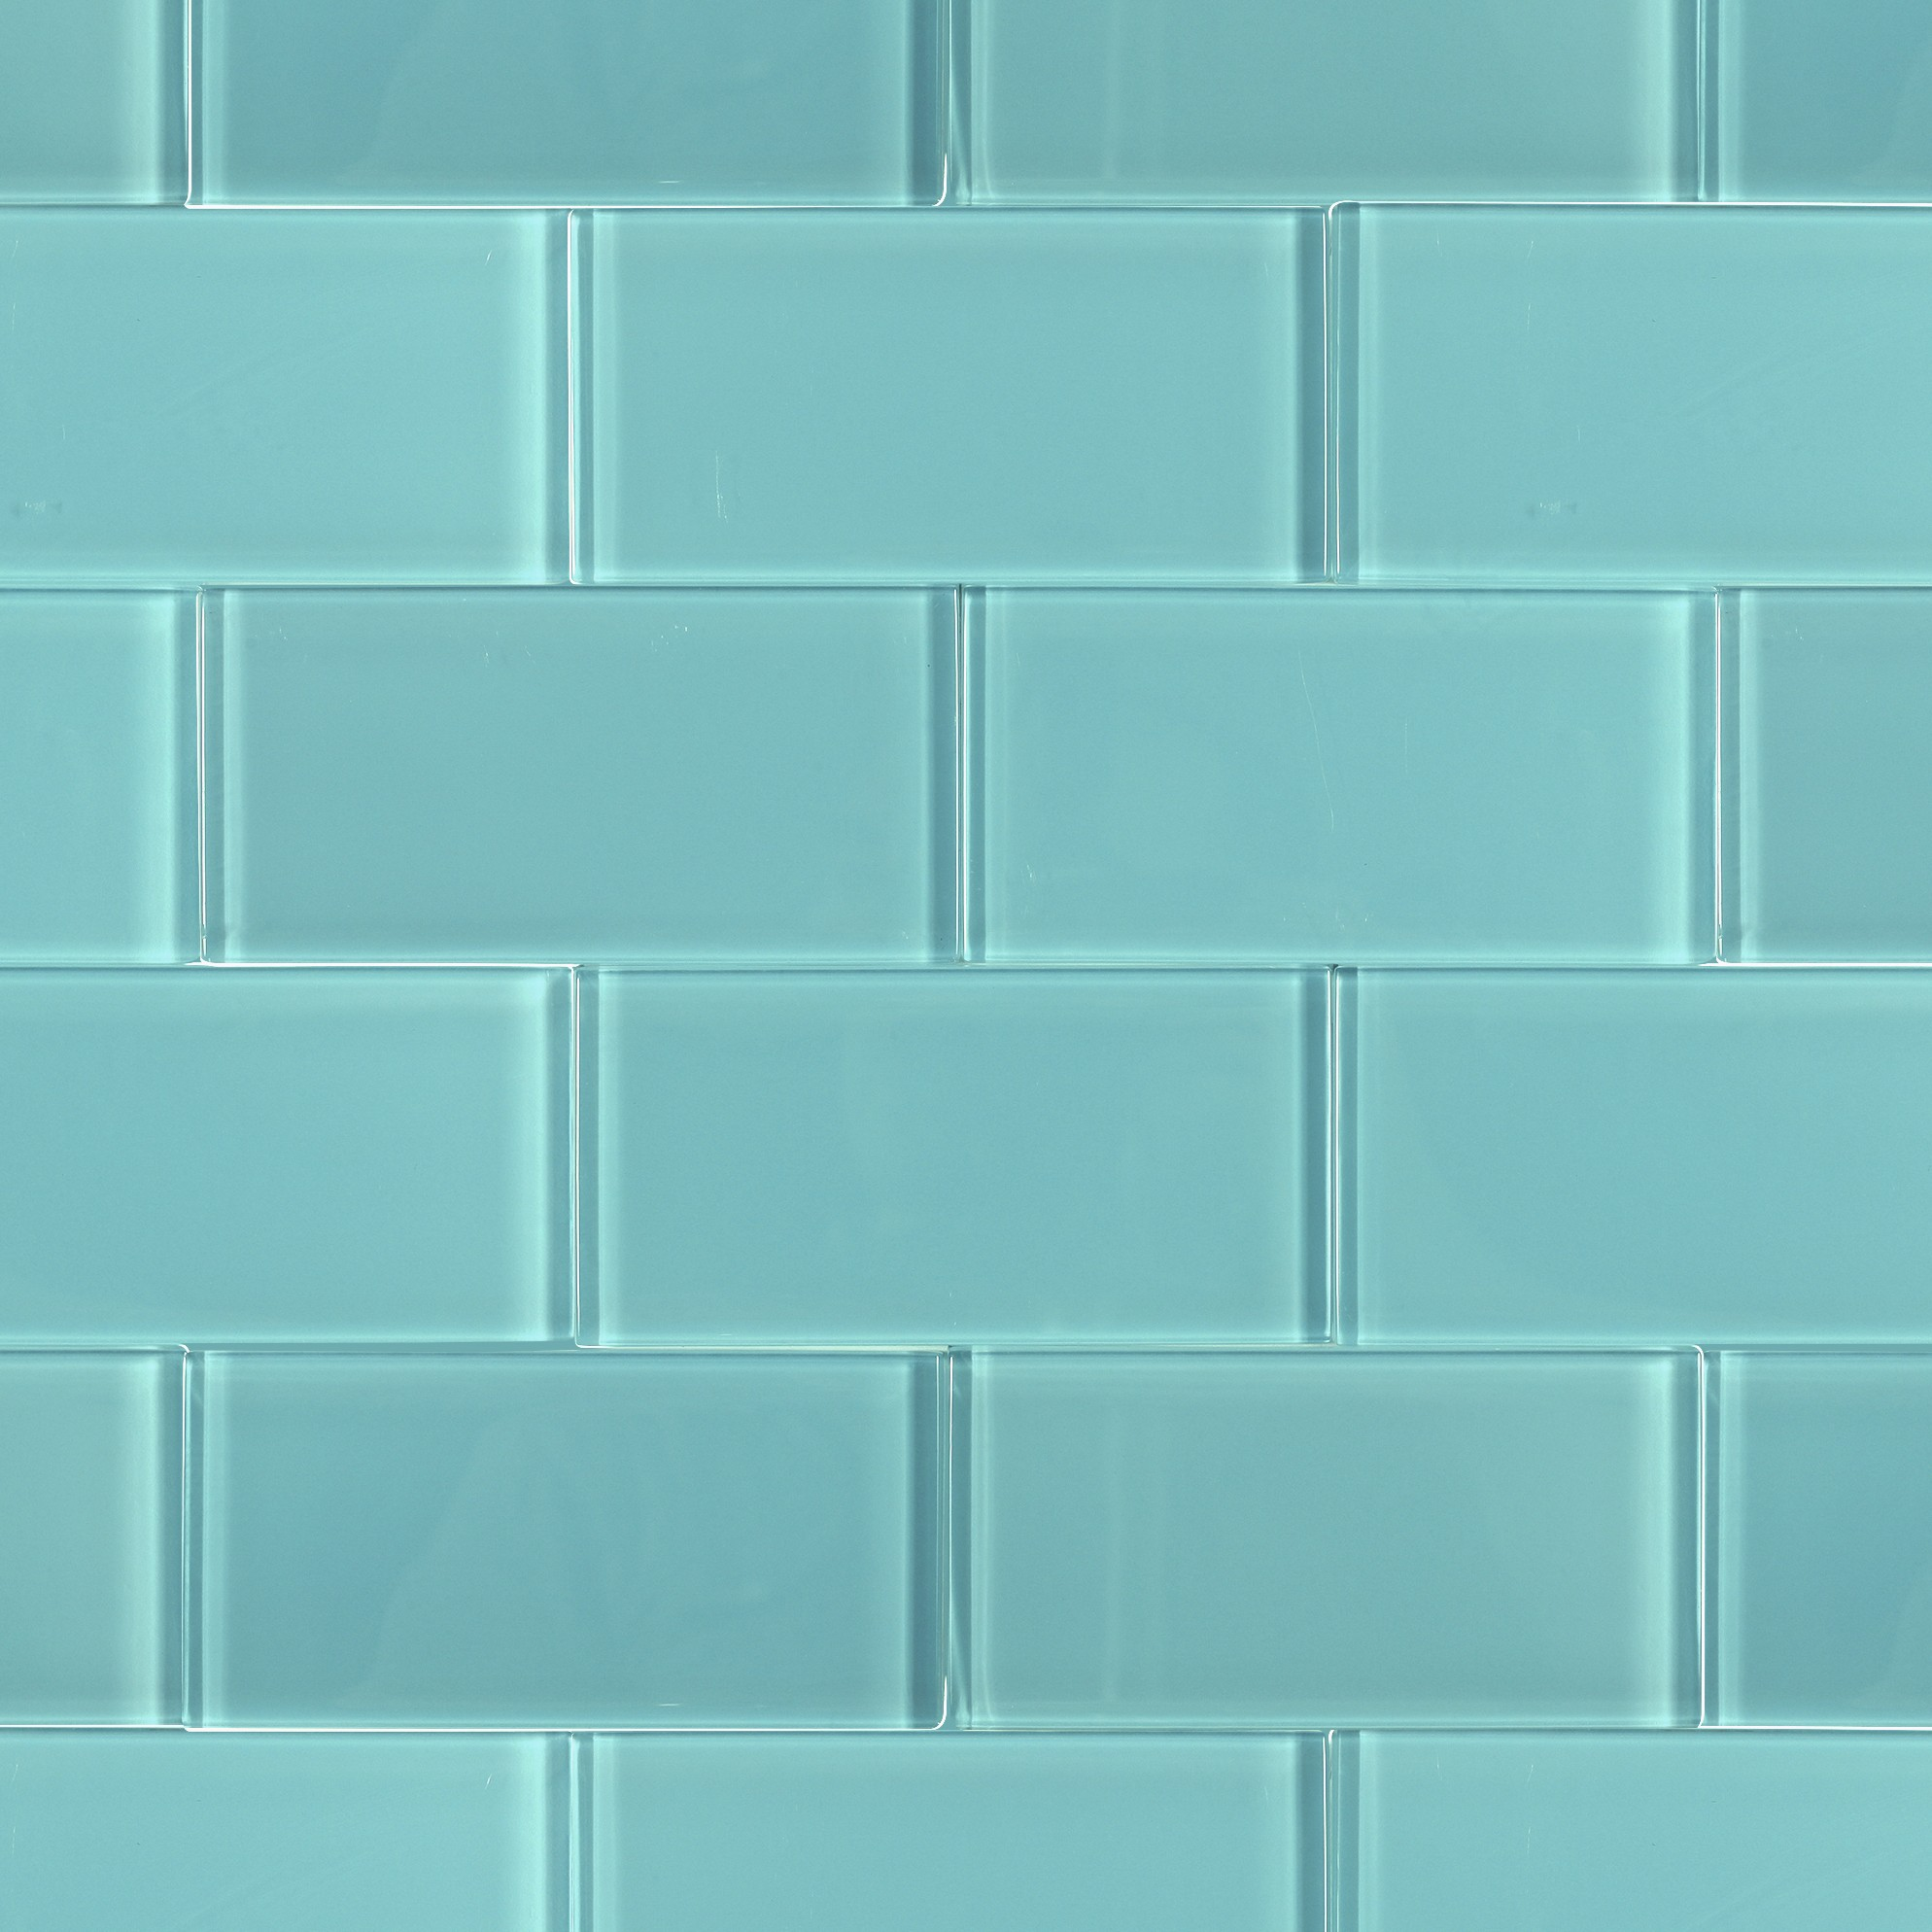 Kitchen Marble Top Shop For Loft Turquoise Polished 3 X 6 Glass Tiles At